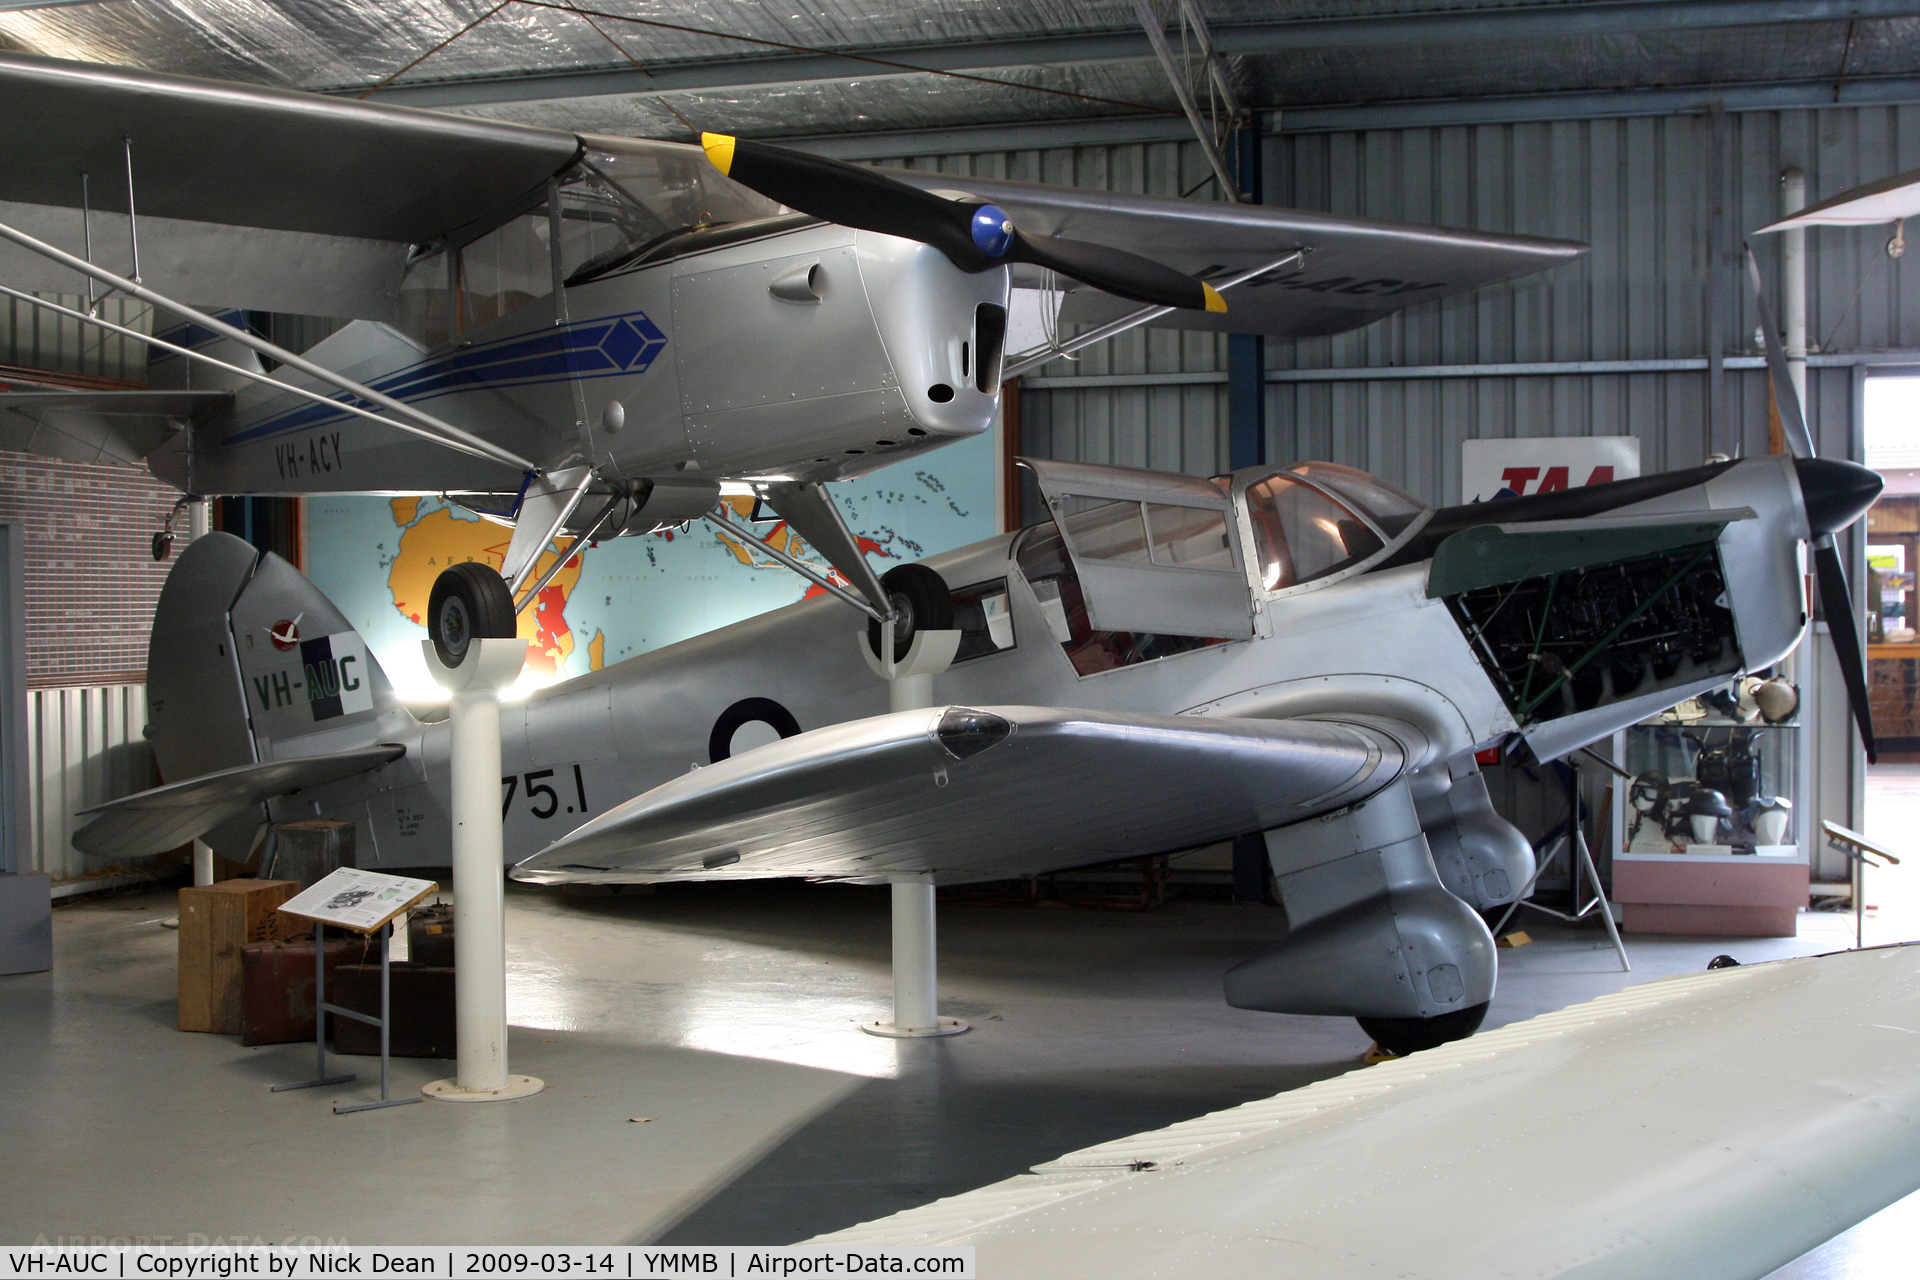 VH-AUC, 1946 Percival P-28 Proctor 1 C/N P-6194, YMMB (Australian National Aviation Museum)